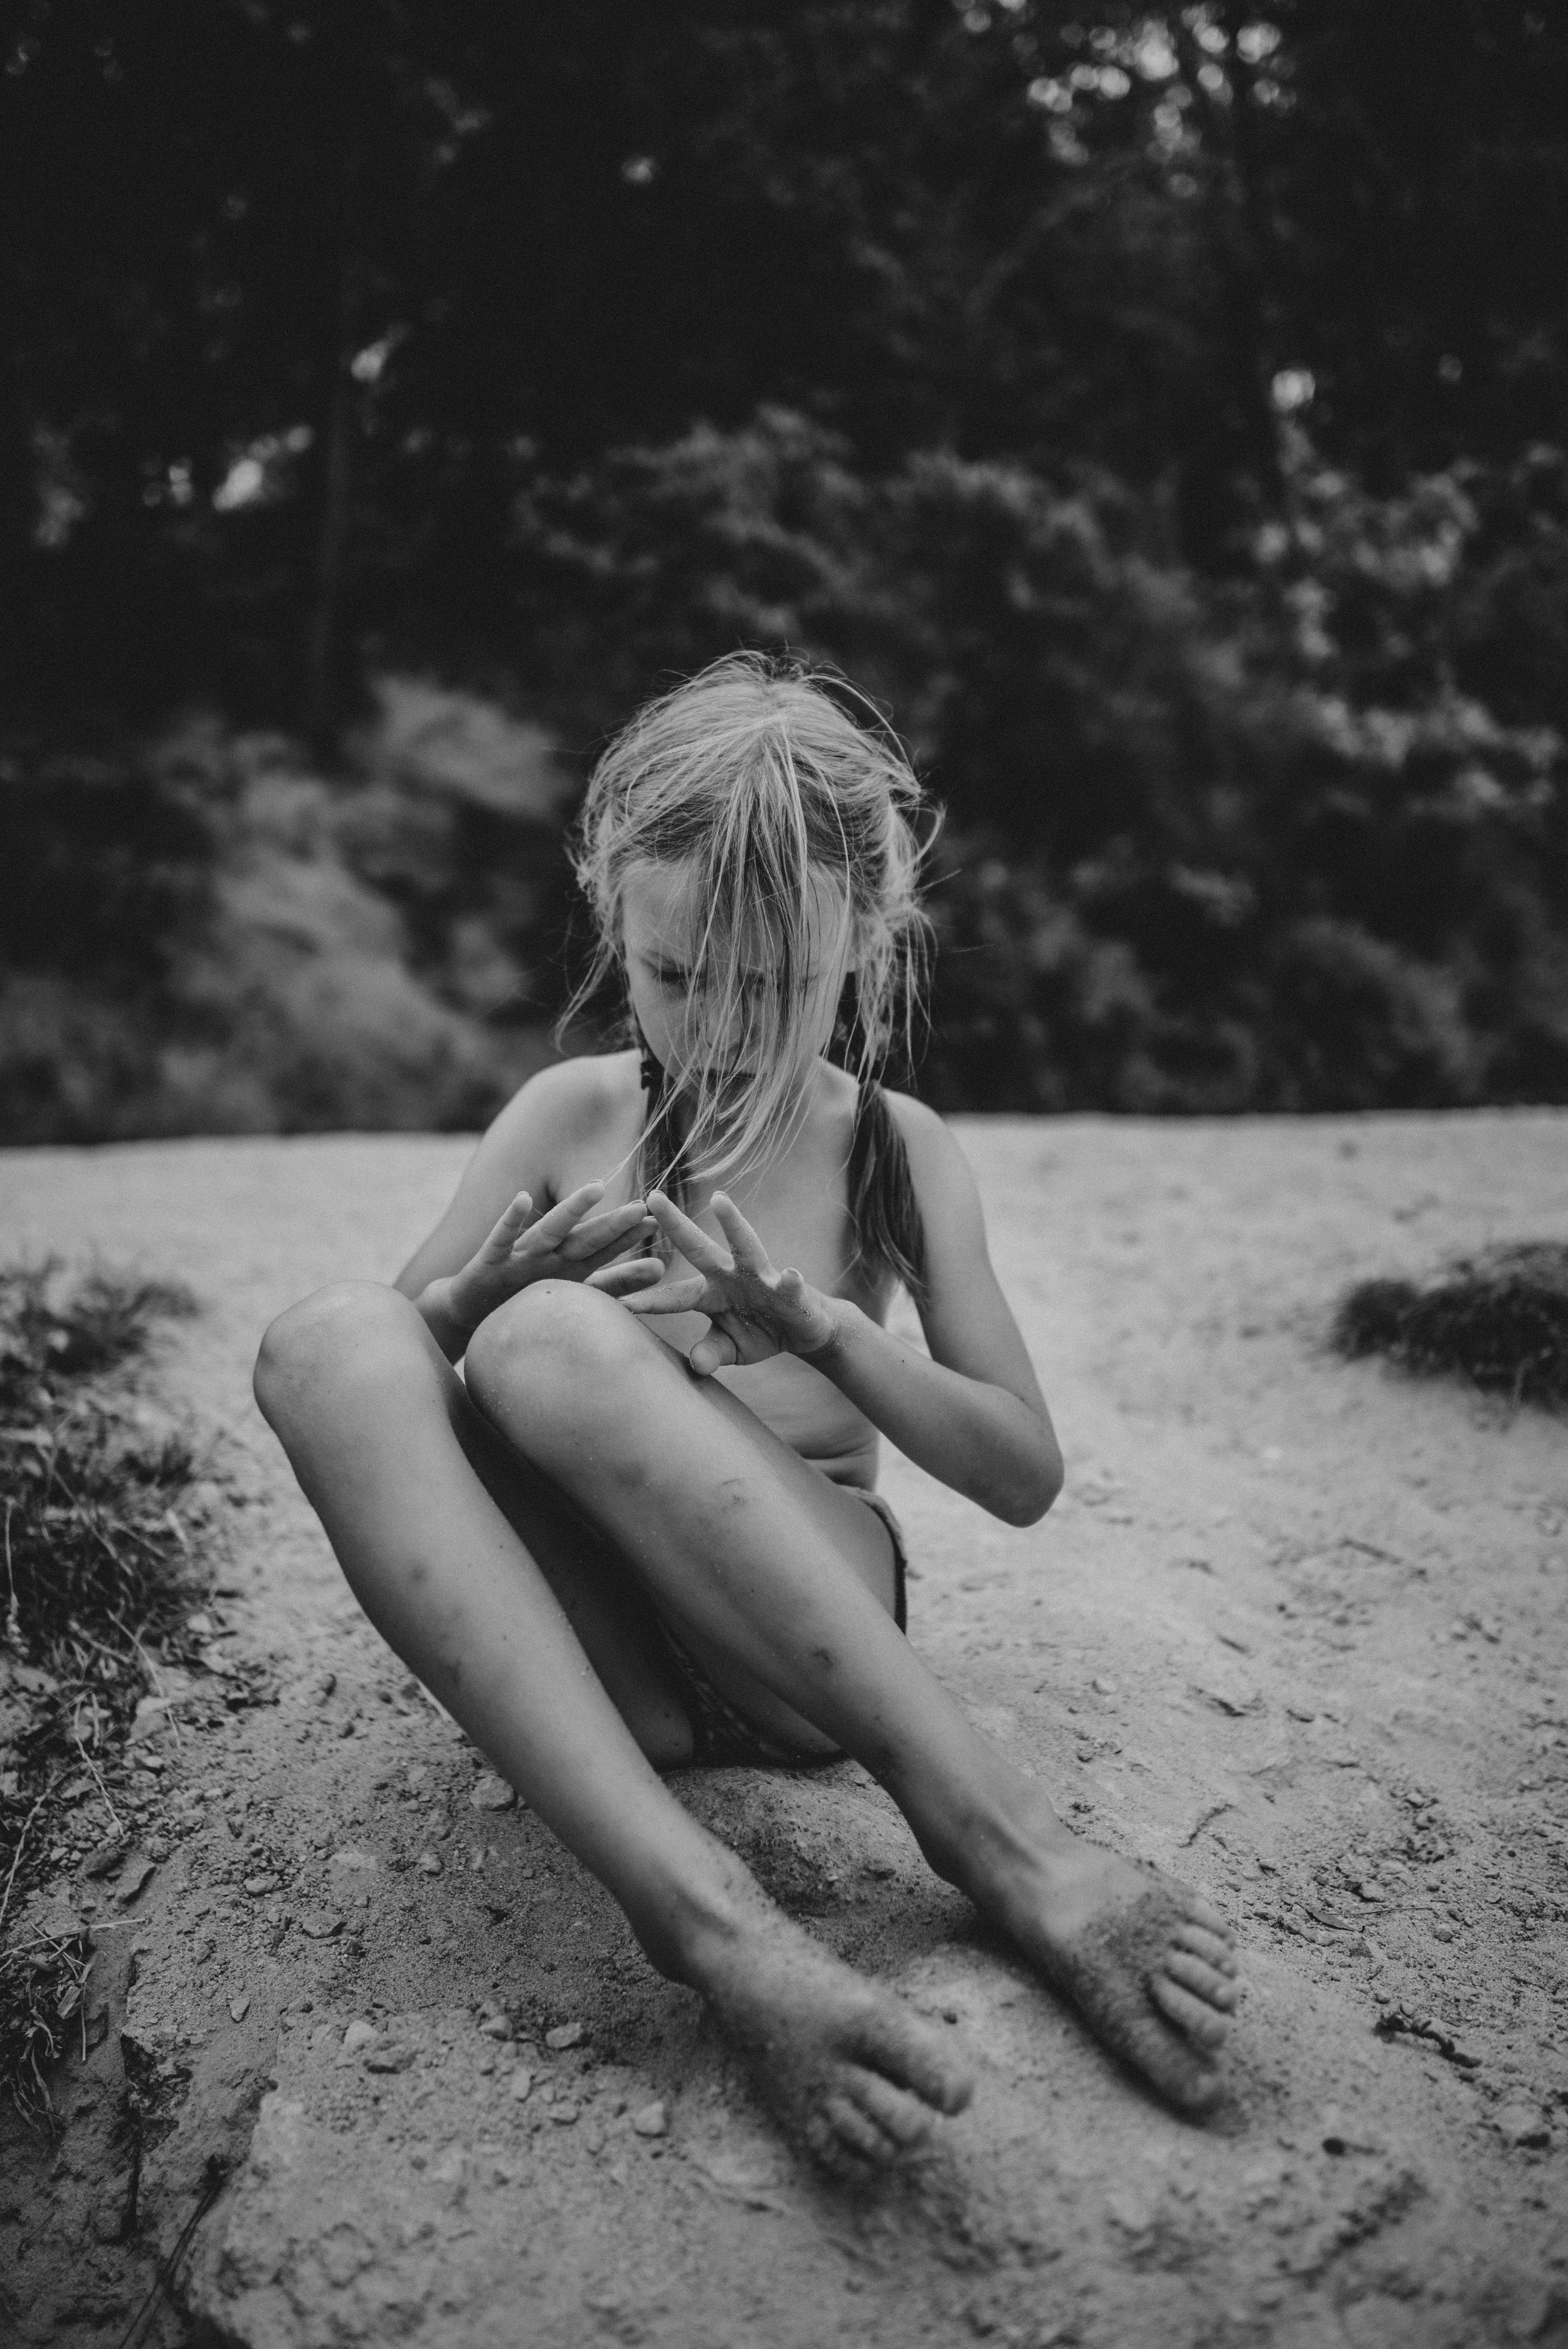 Young girl on beach looks at shell Essex UK Documentary Portrait Photographer